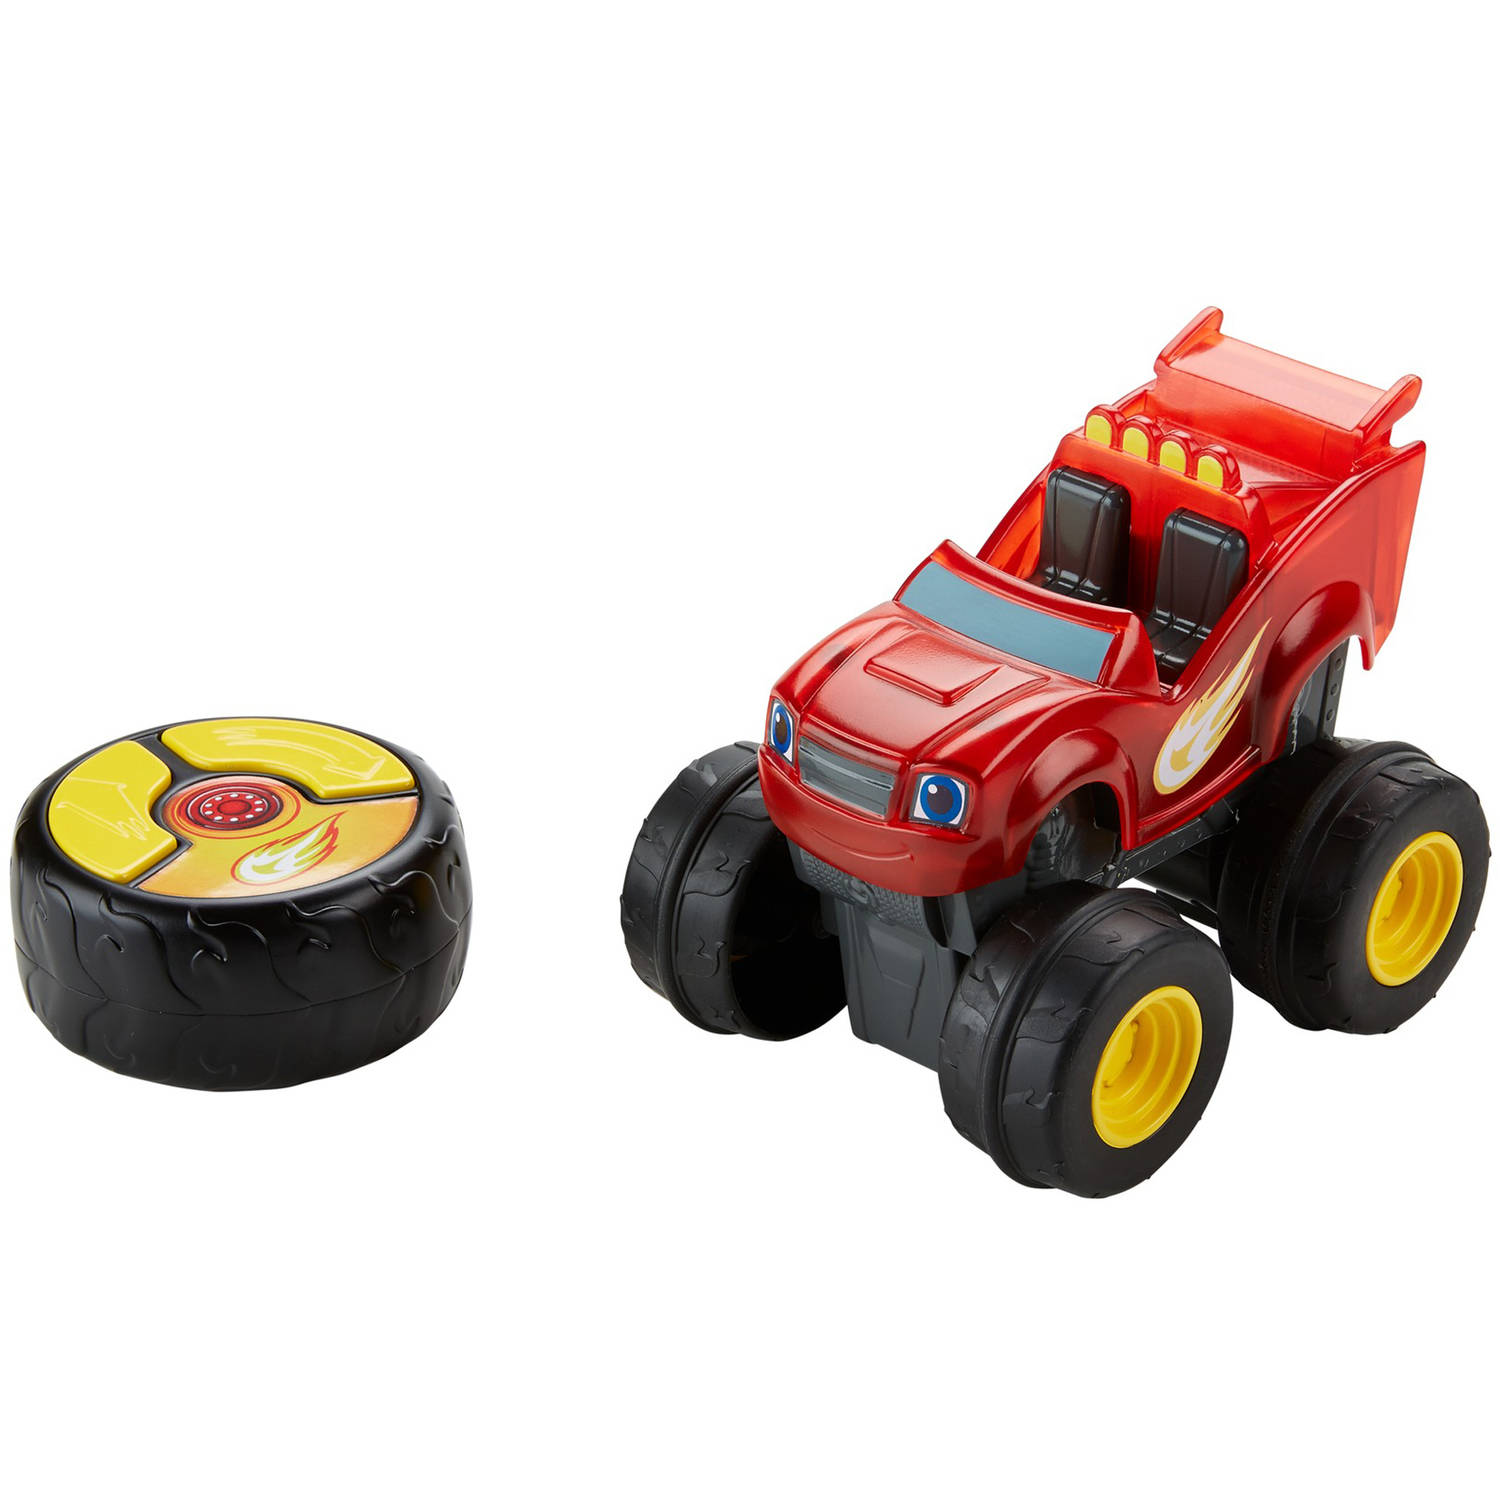 Nickelodeon Blaze and the Monster Machines R C Racing Blaze by FISHER-PRICE BRANDS A DIVISION OF MATTEL DIRECT IMPORT INC